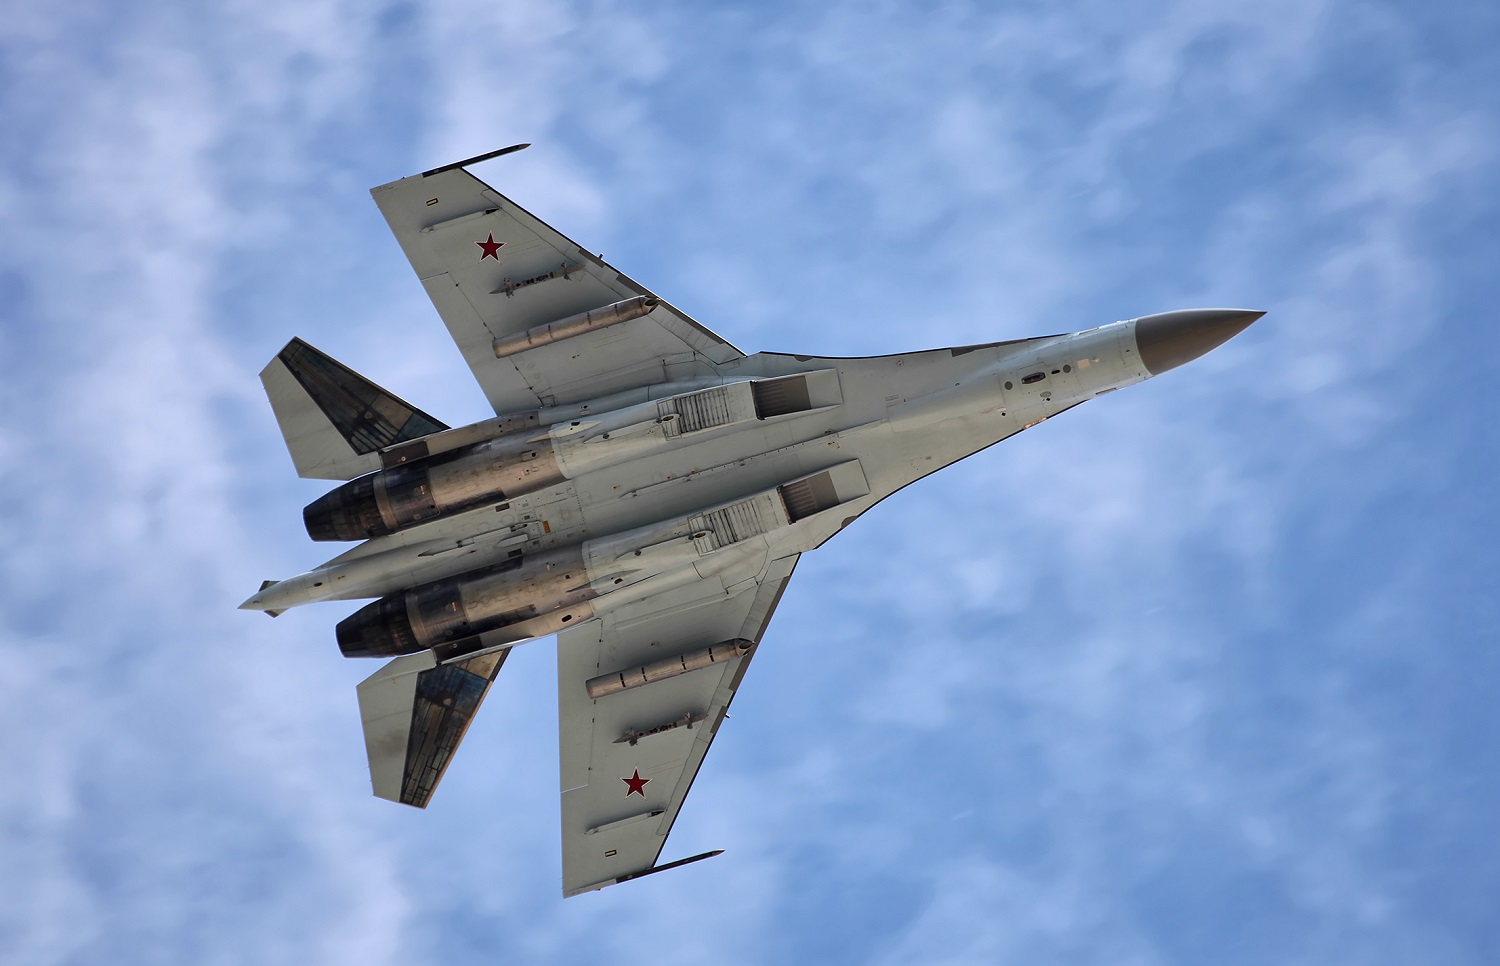 The Dogfighter: Why Russia's Su-35 Fighter Won't Be An Easy Target for Anyone